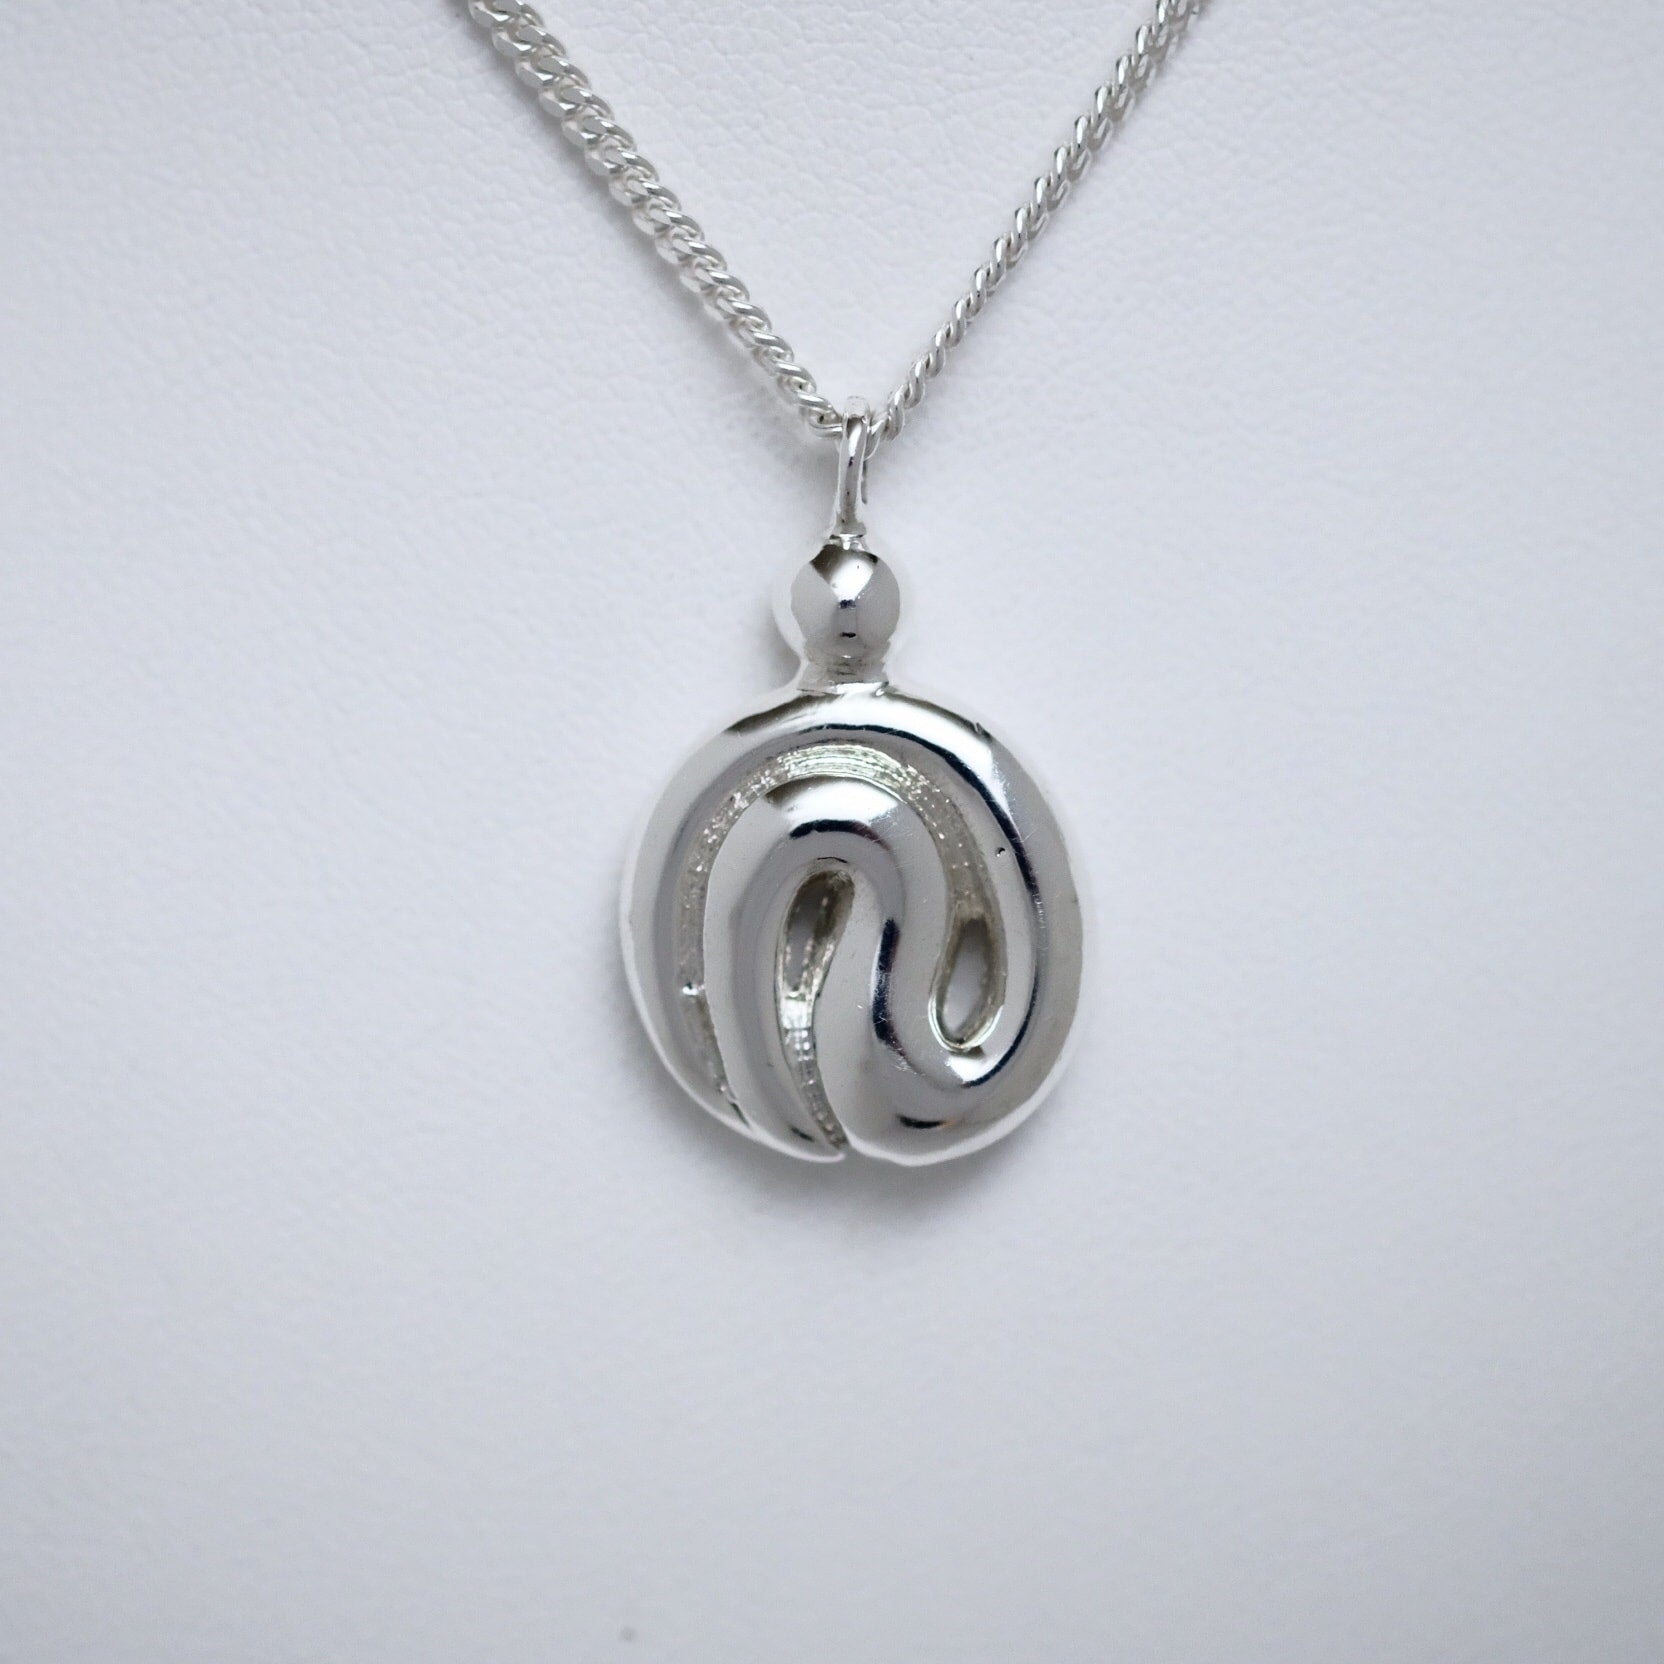 I Miss You single size sterling silver pendant by Joseph Chiang